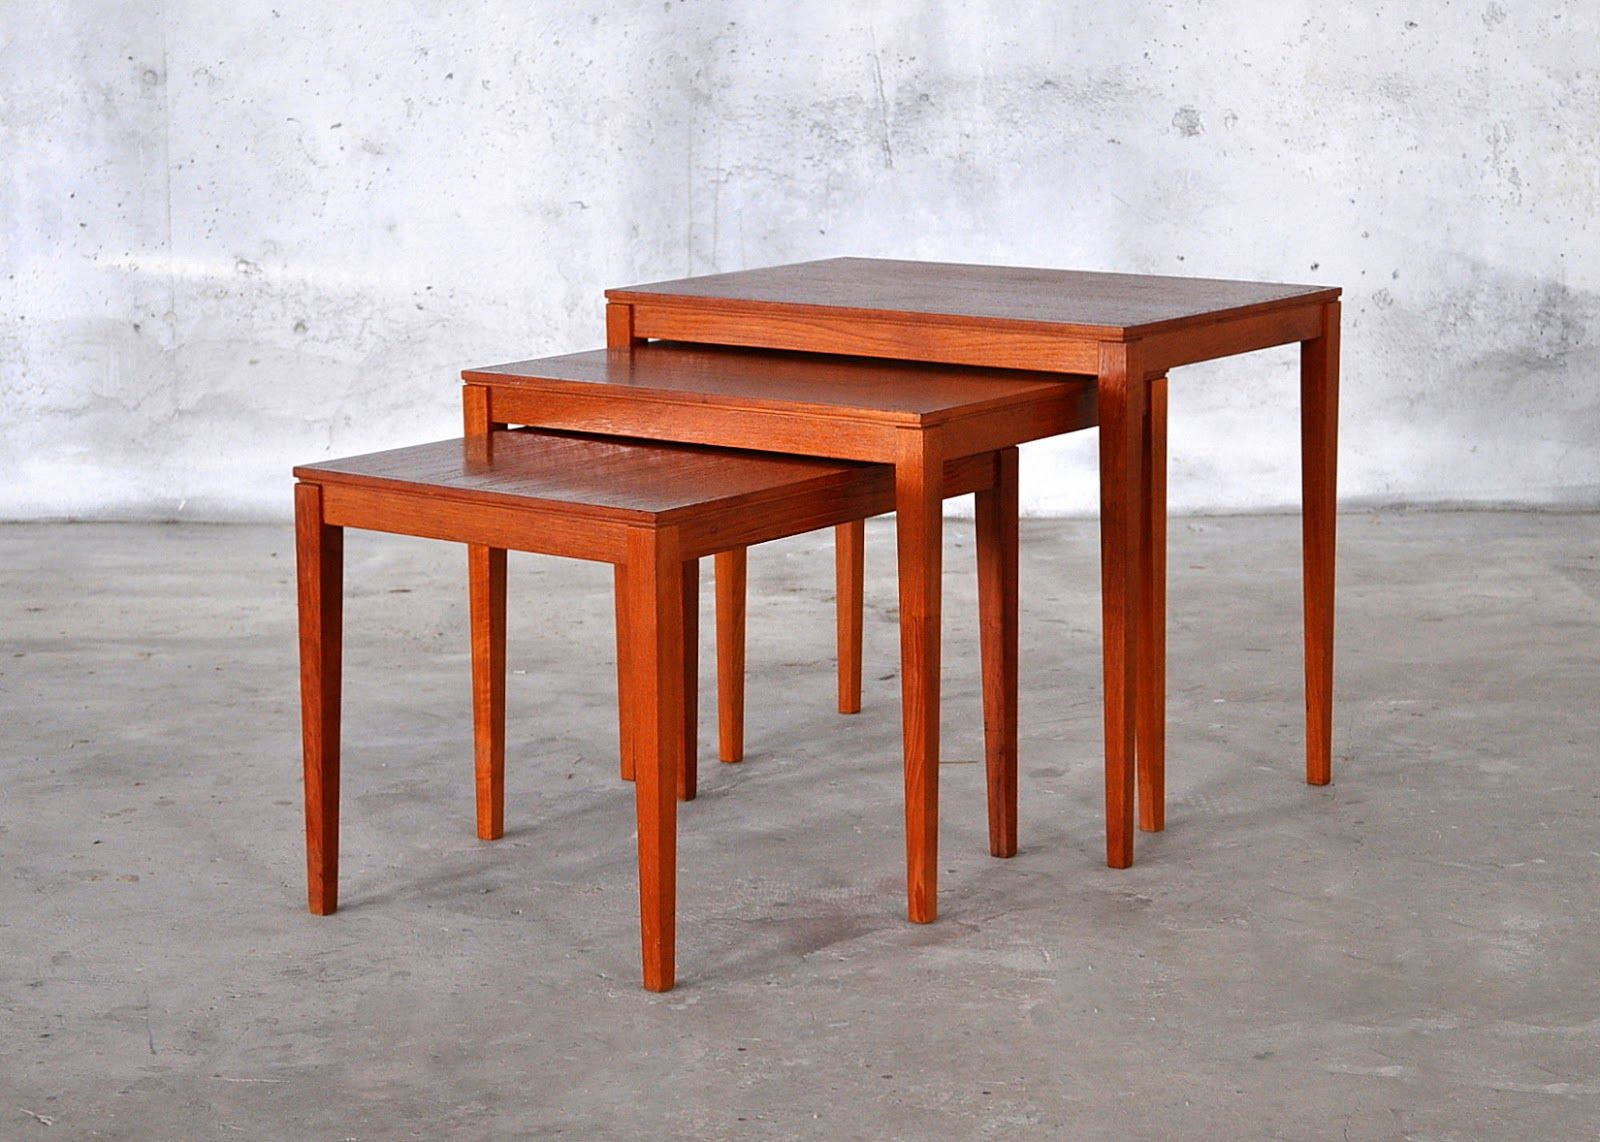 Teak Nesting Tables By Bent Silberg For Mobler Of Denmark Furniture Teak Nesting Tables